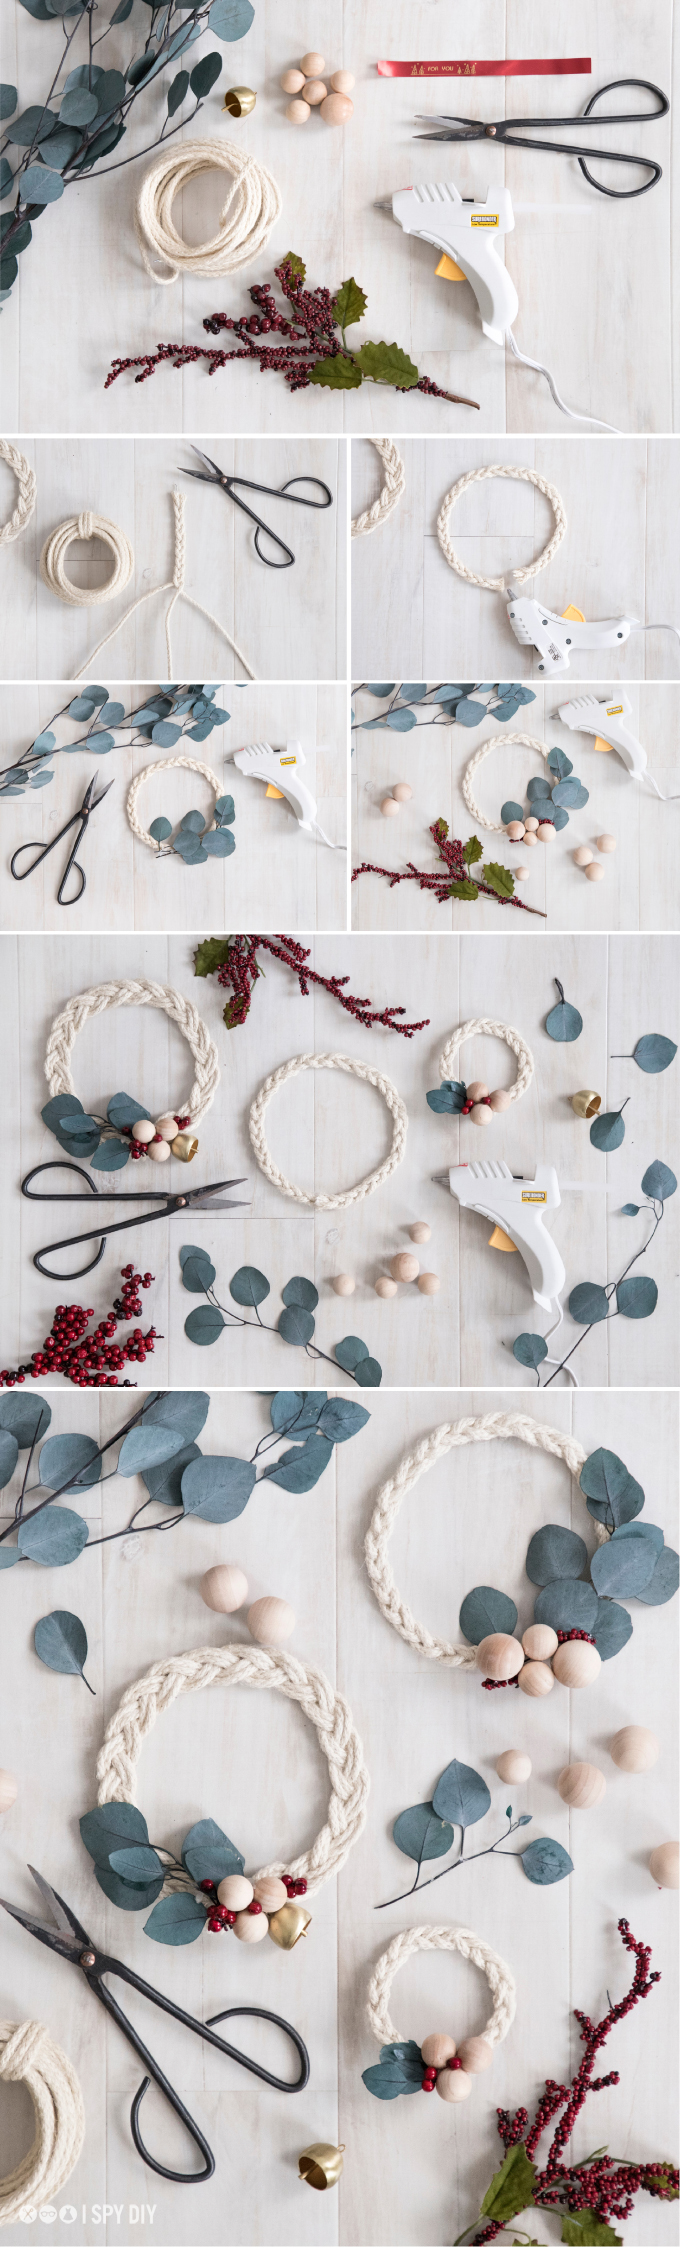 ispydiy_braidedropewreath_steps